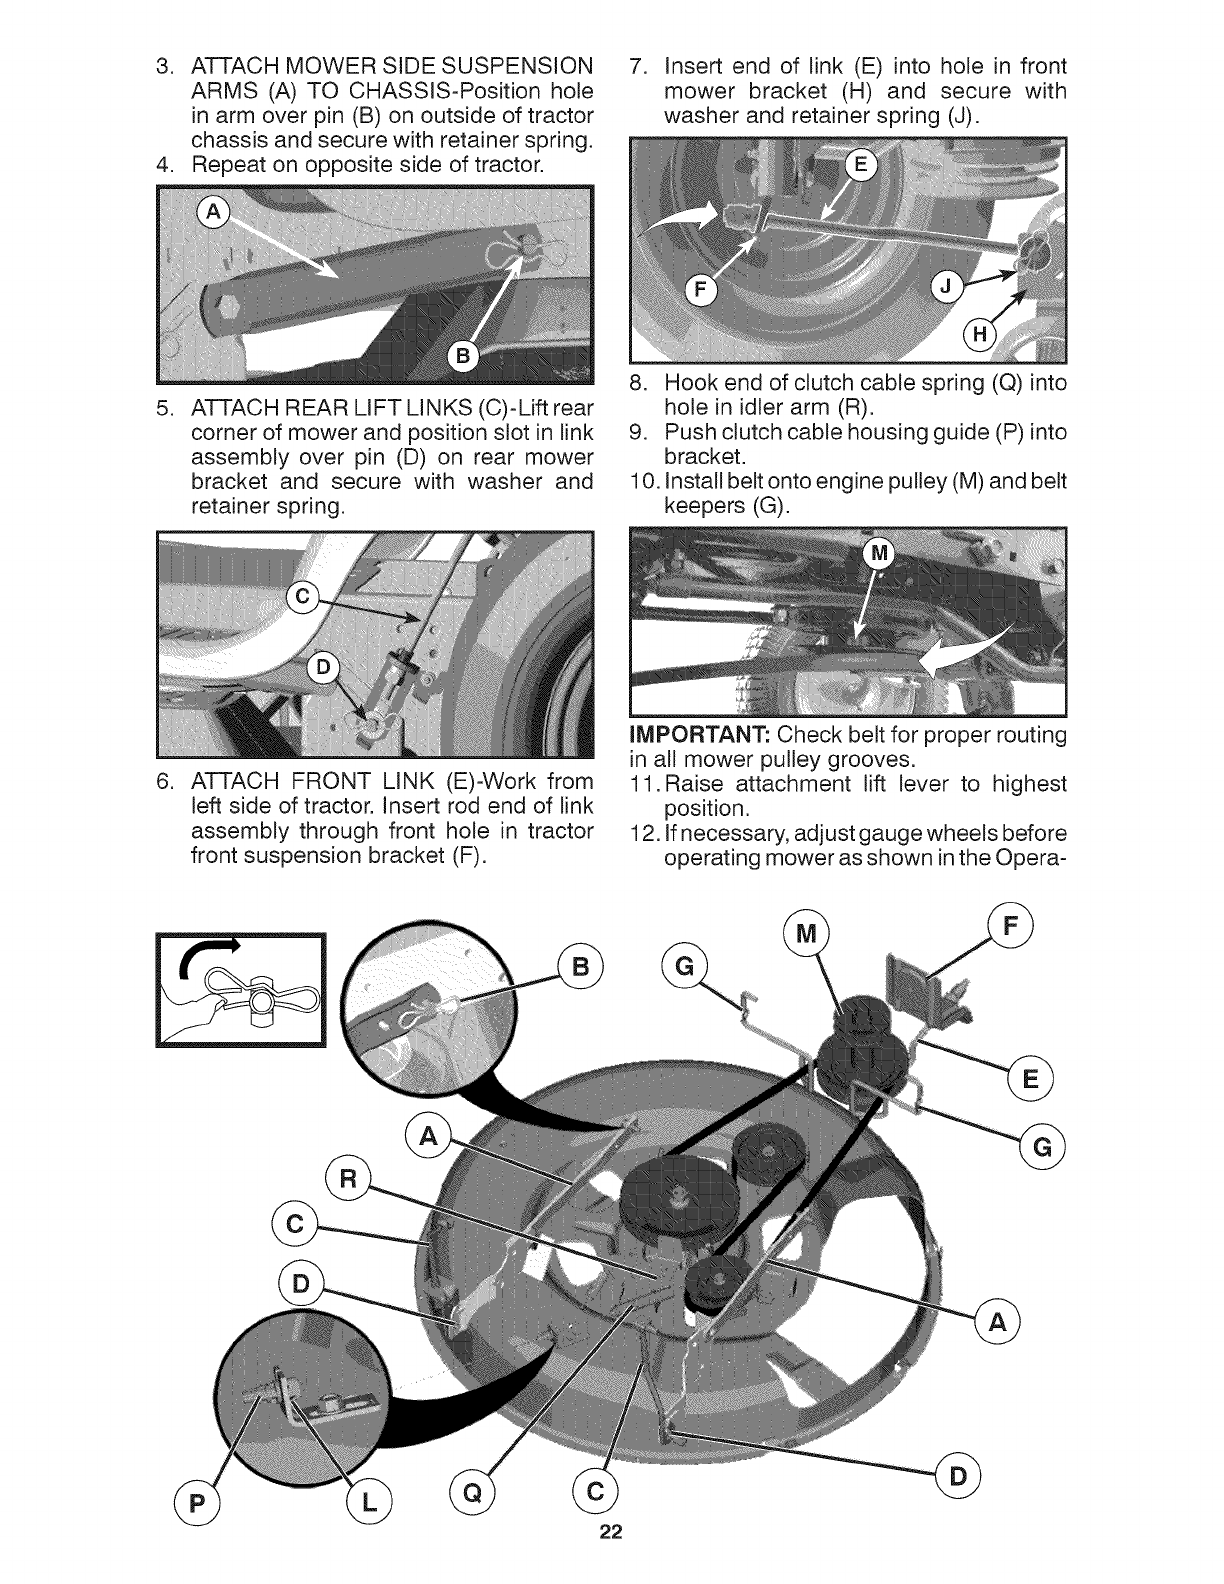 Electric Pto Clutch Craftsman Retaining Pin : Page of craftsman lawn mower  user guide